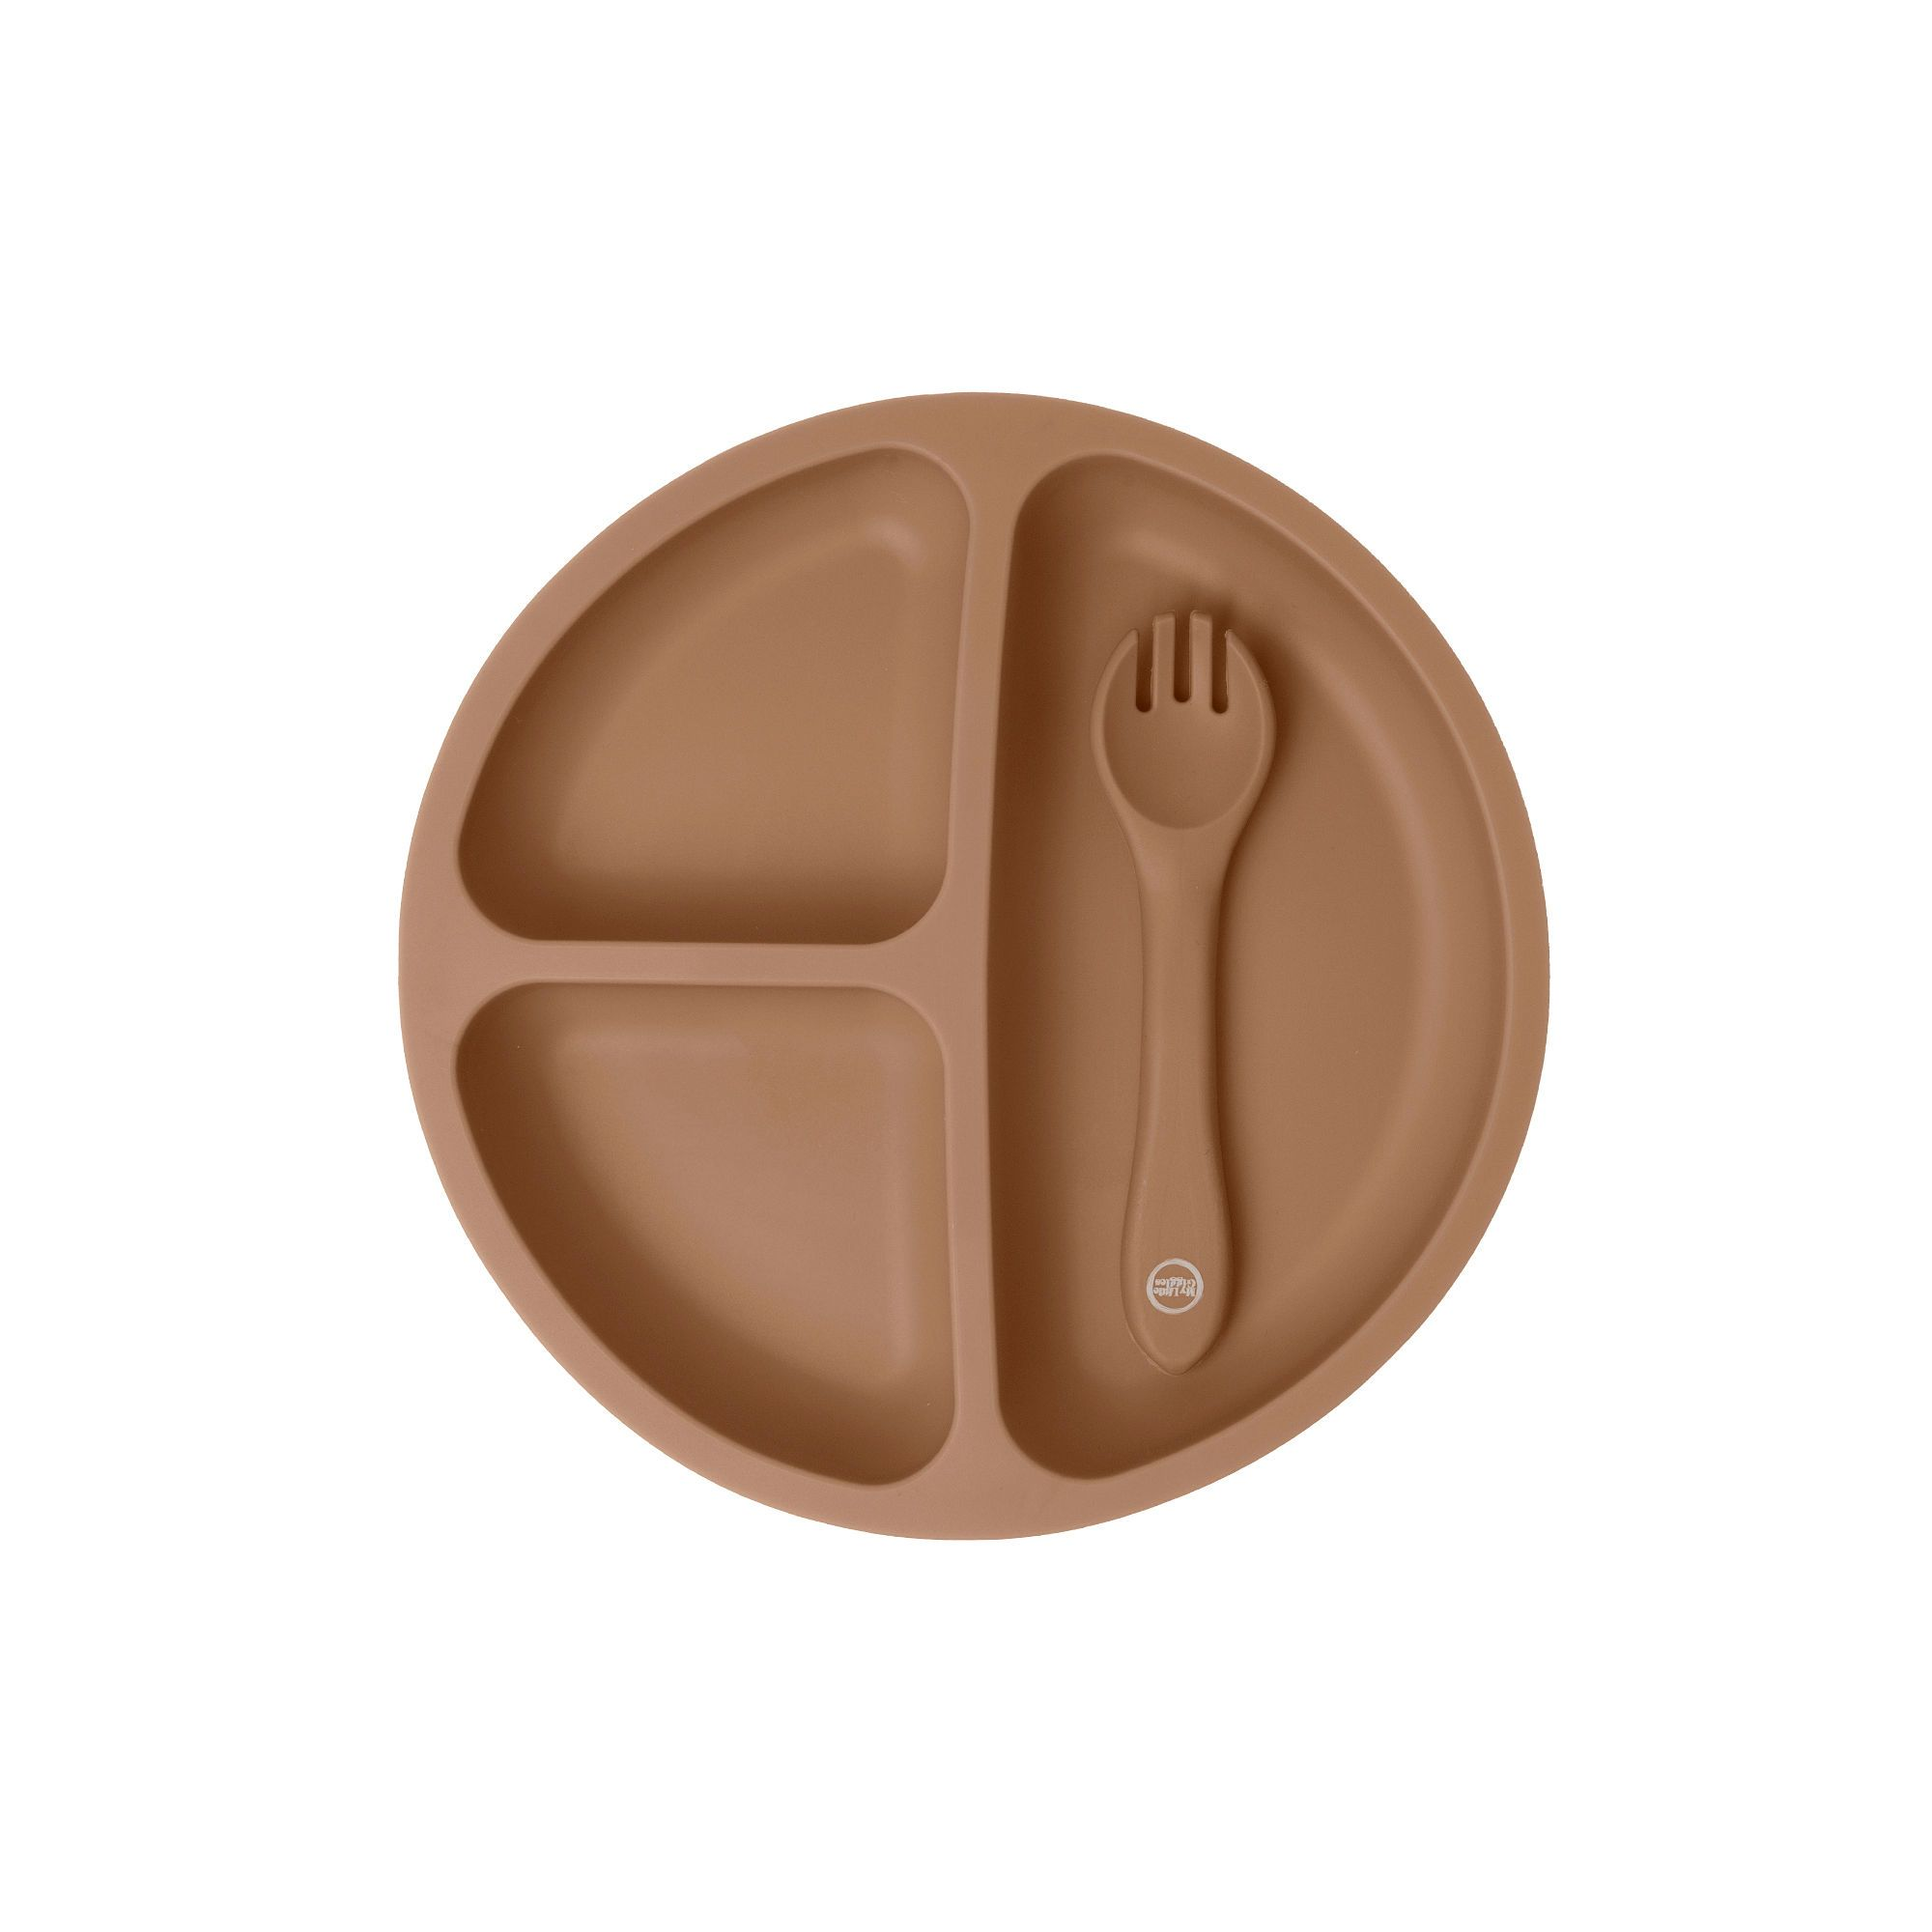 Clay Suction Plate & Spoon/Fork Set - My Little Giggles